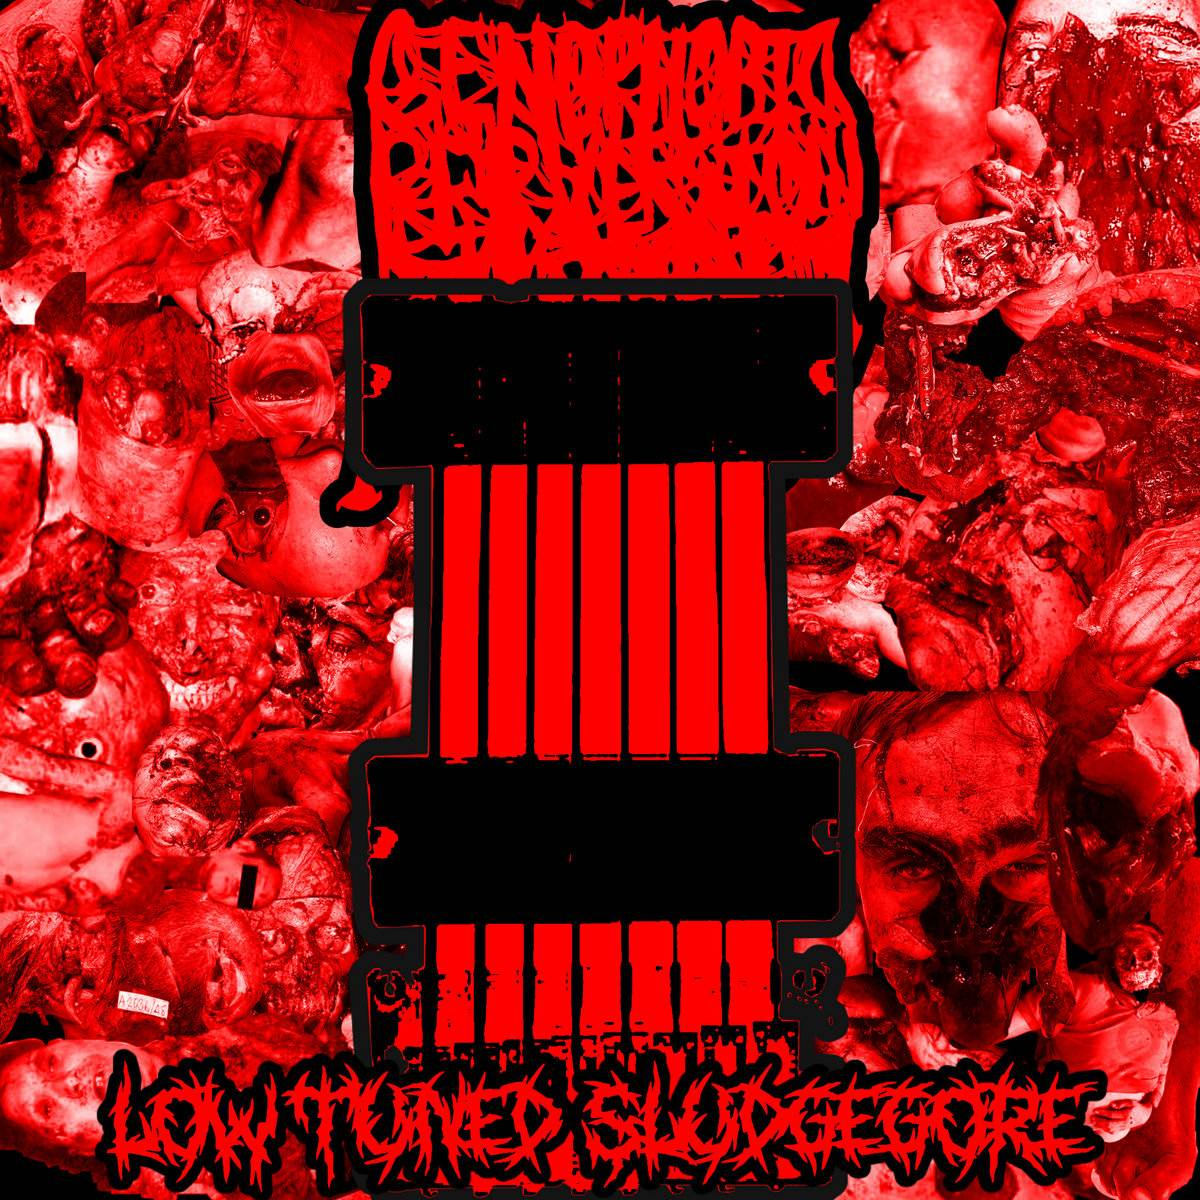 GENOPHOBIC PERVERSION - Low Tuned Sludgegore cover